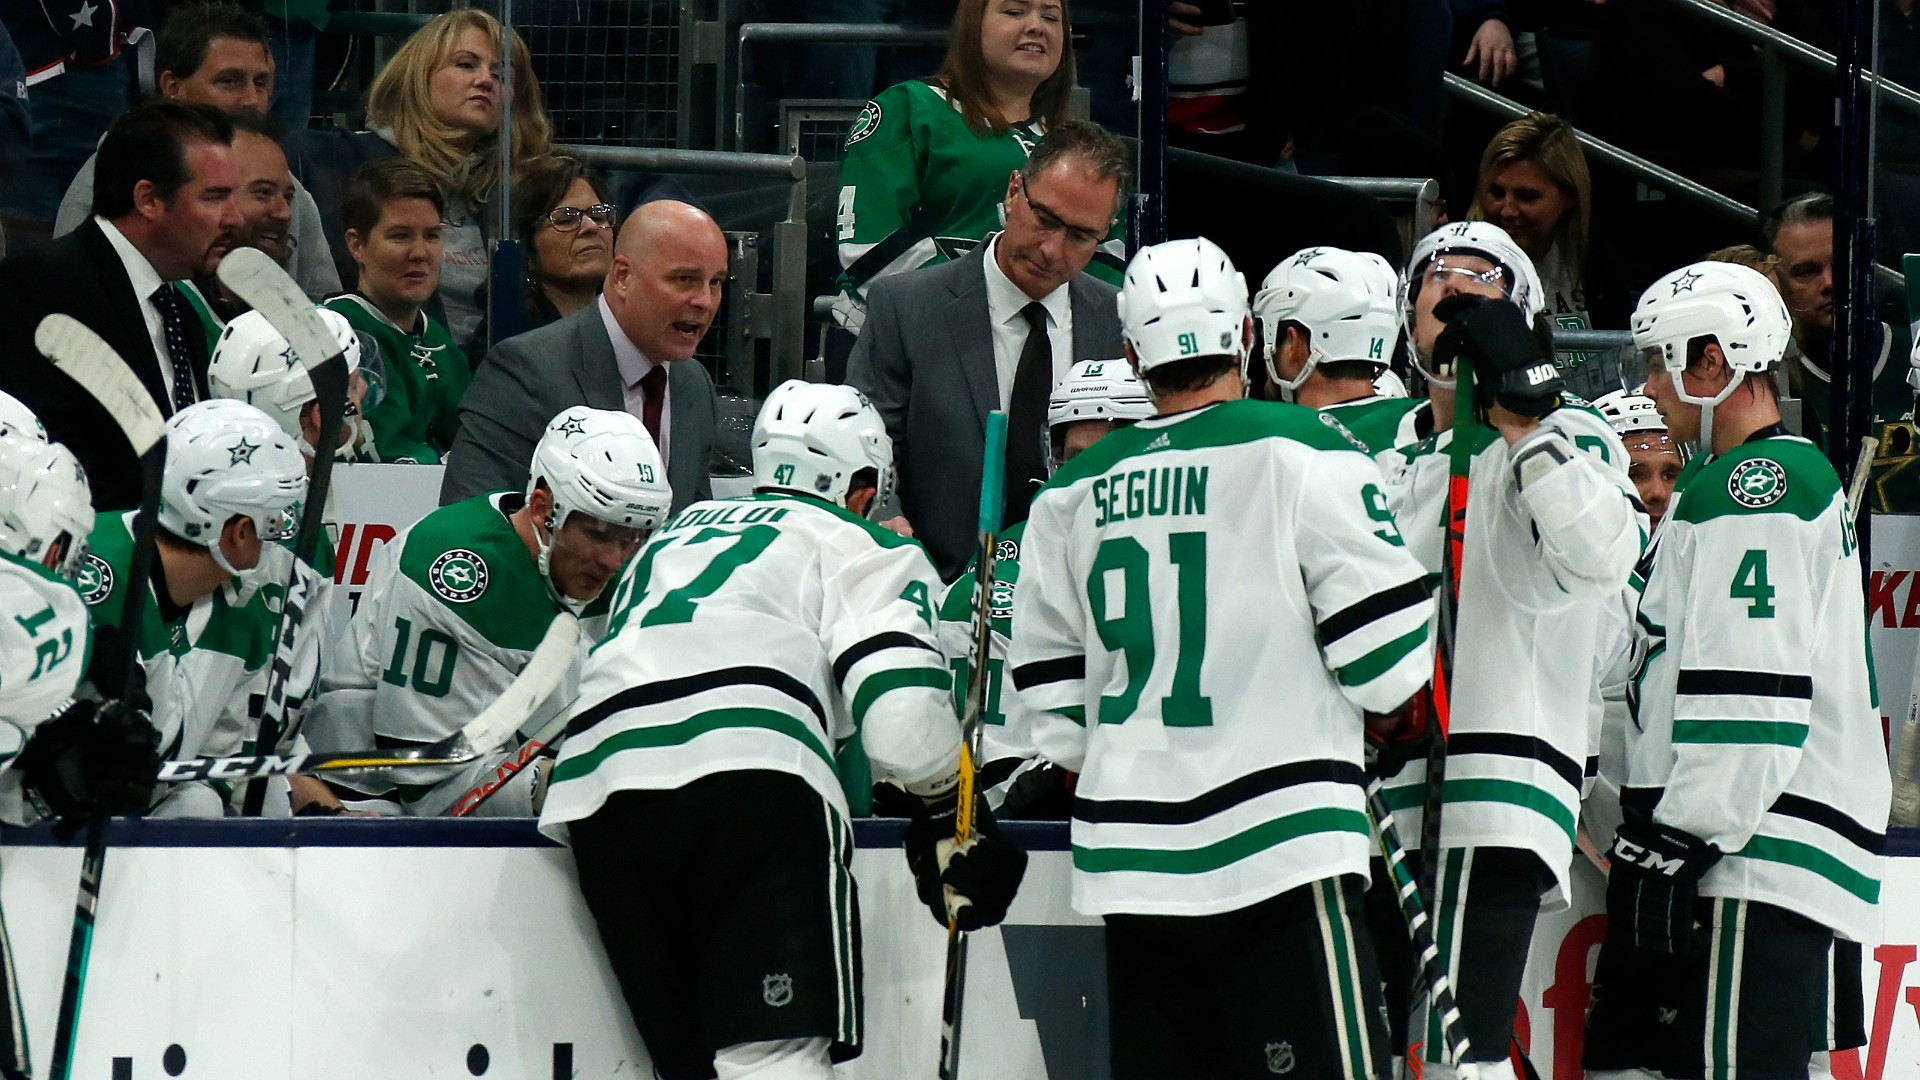 Jim Montgomery on Stars dismissal, road to sobriety: 'That firing was deserved' 1